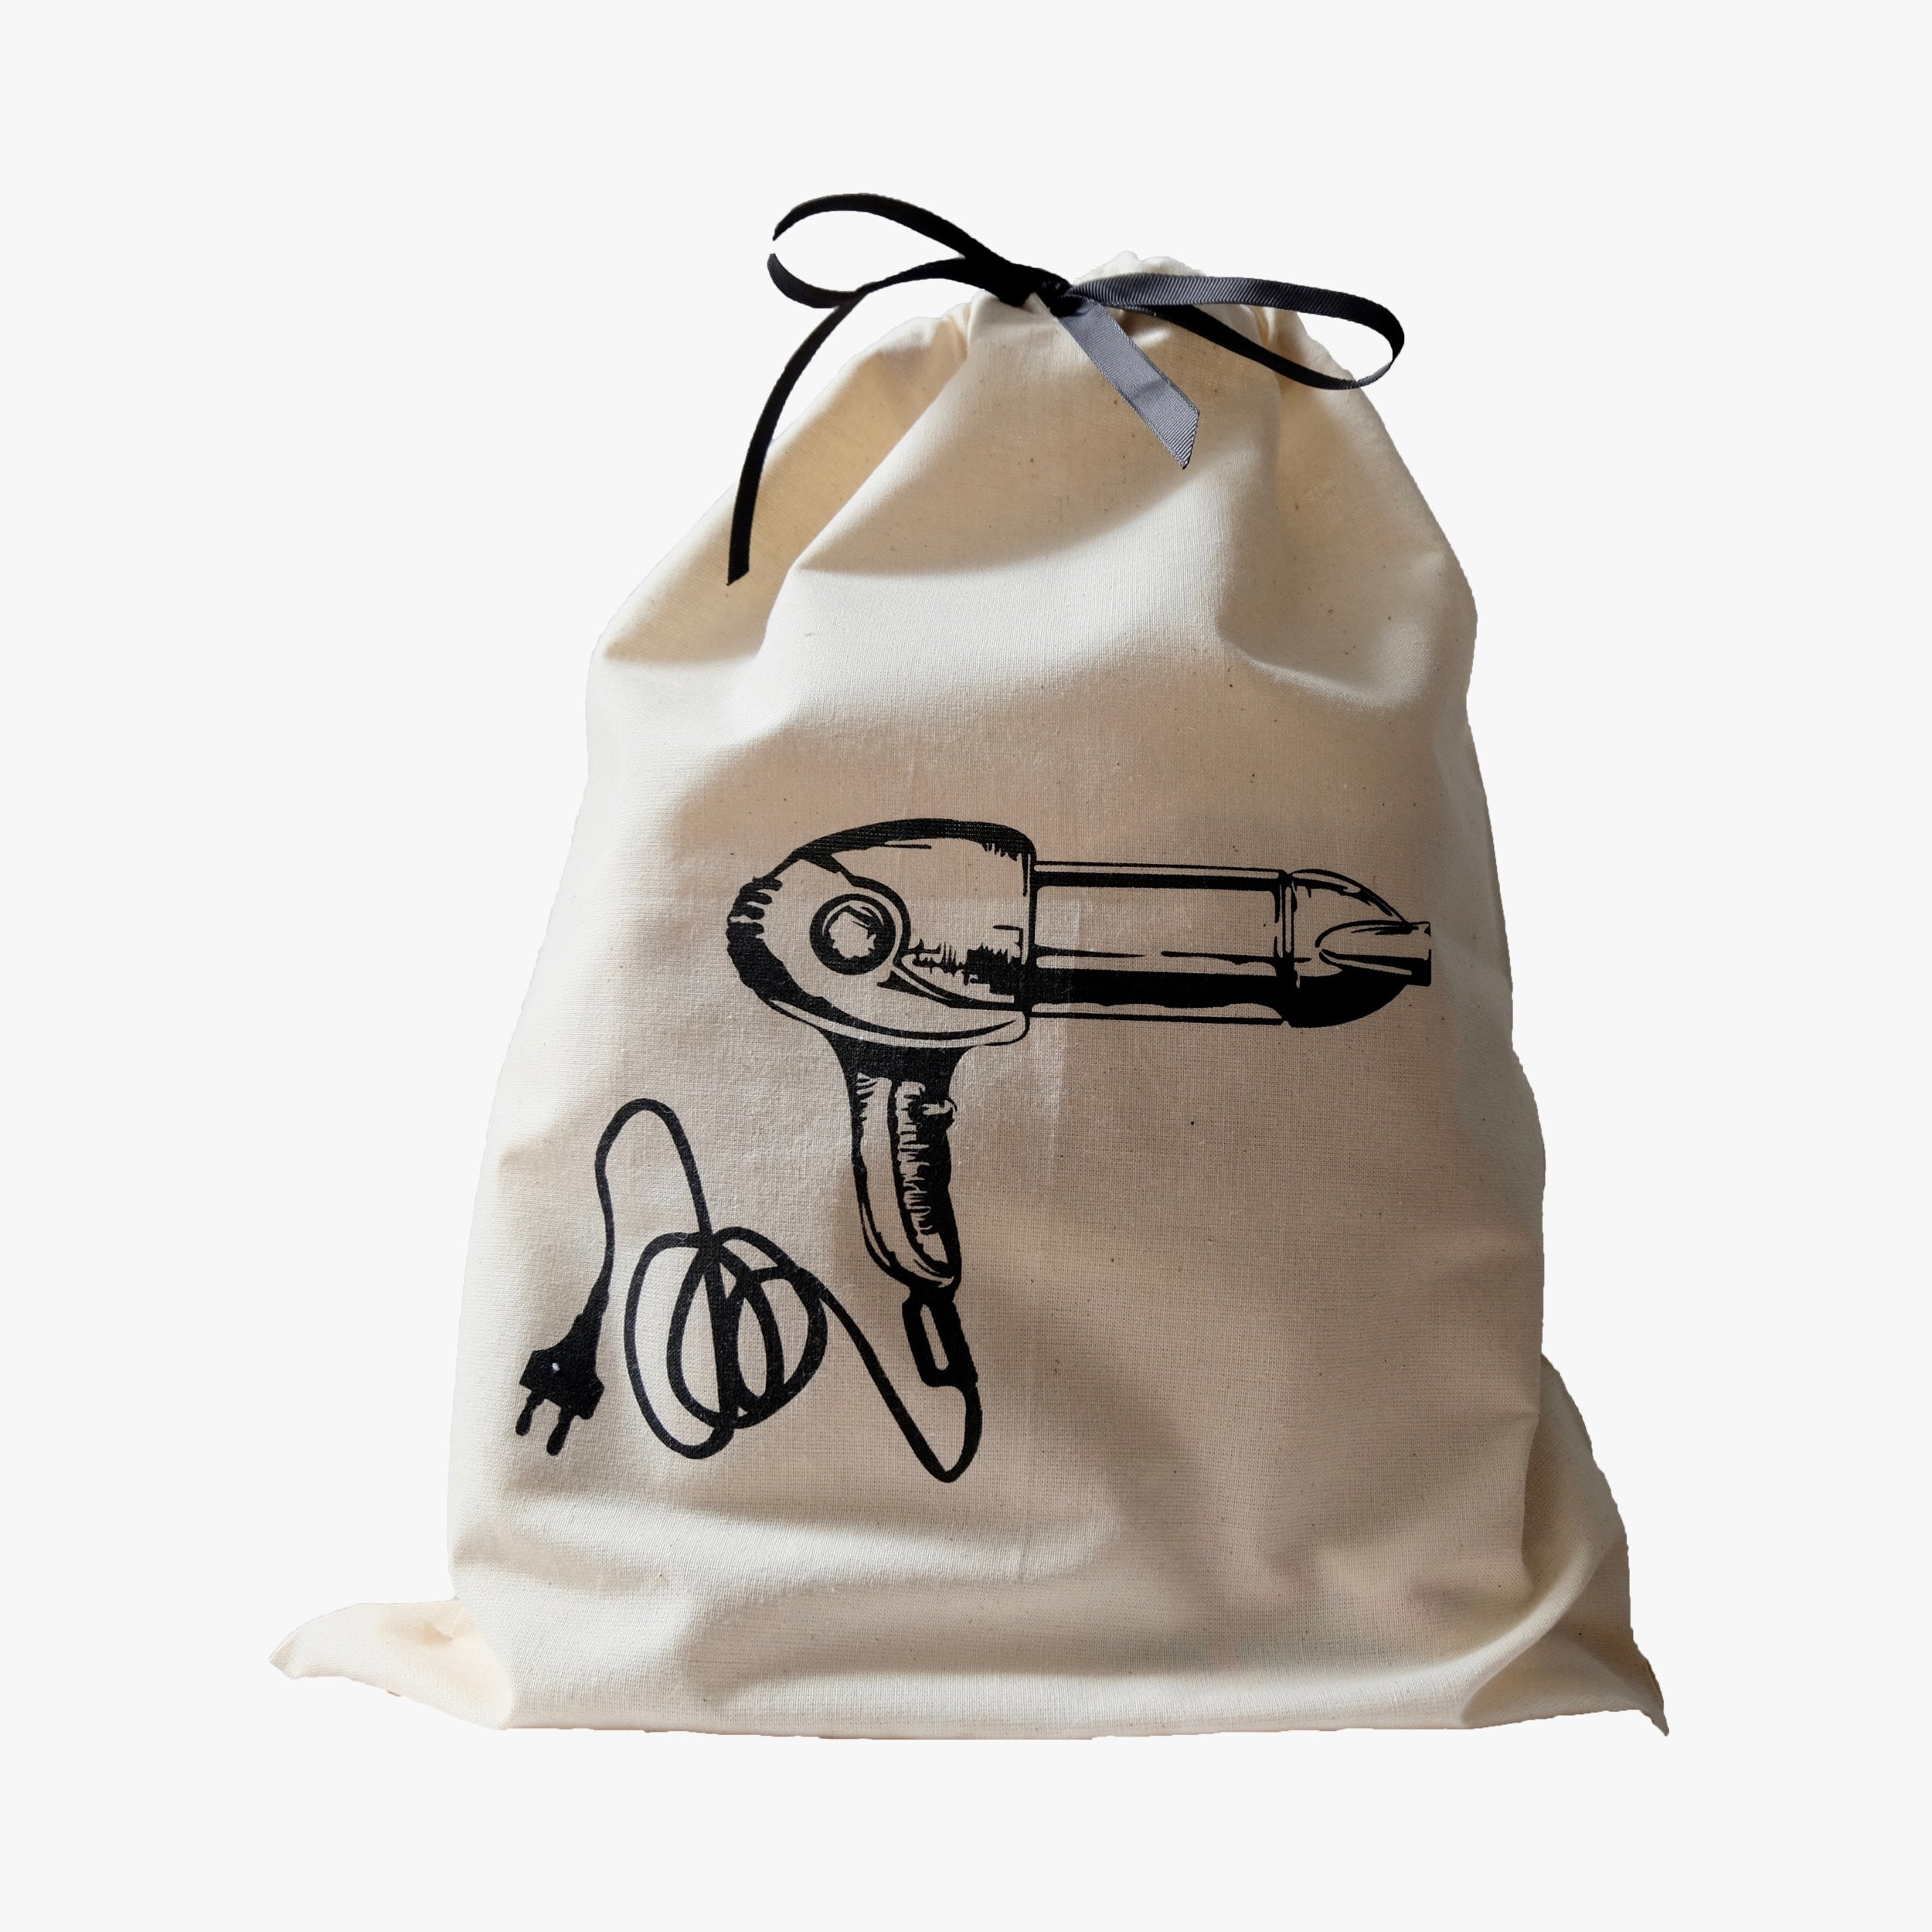 Hair Dryer Cloth Bag - BabMakkah Stores